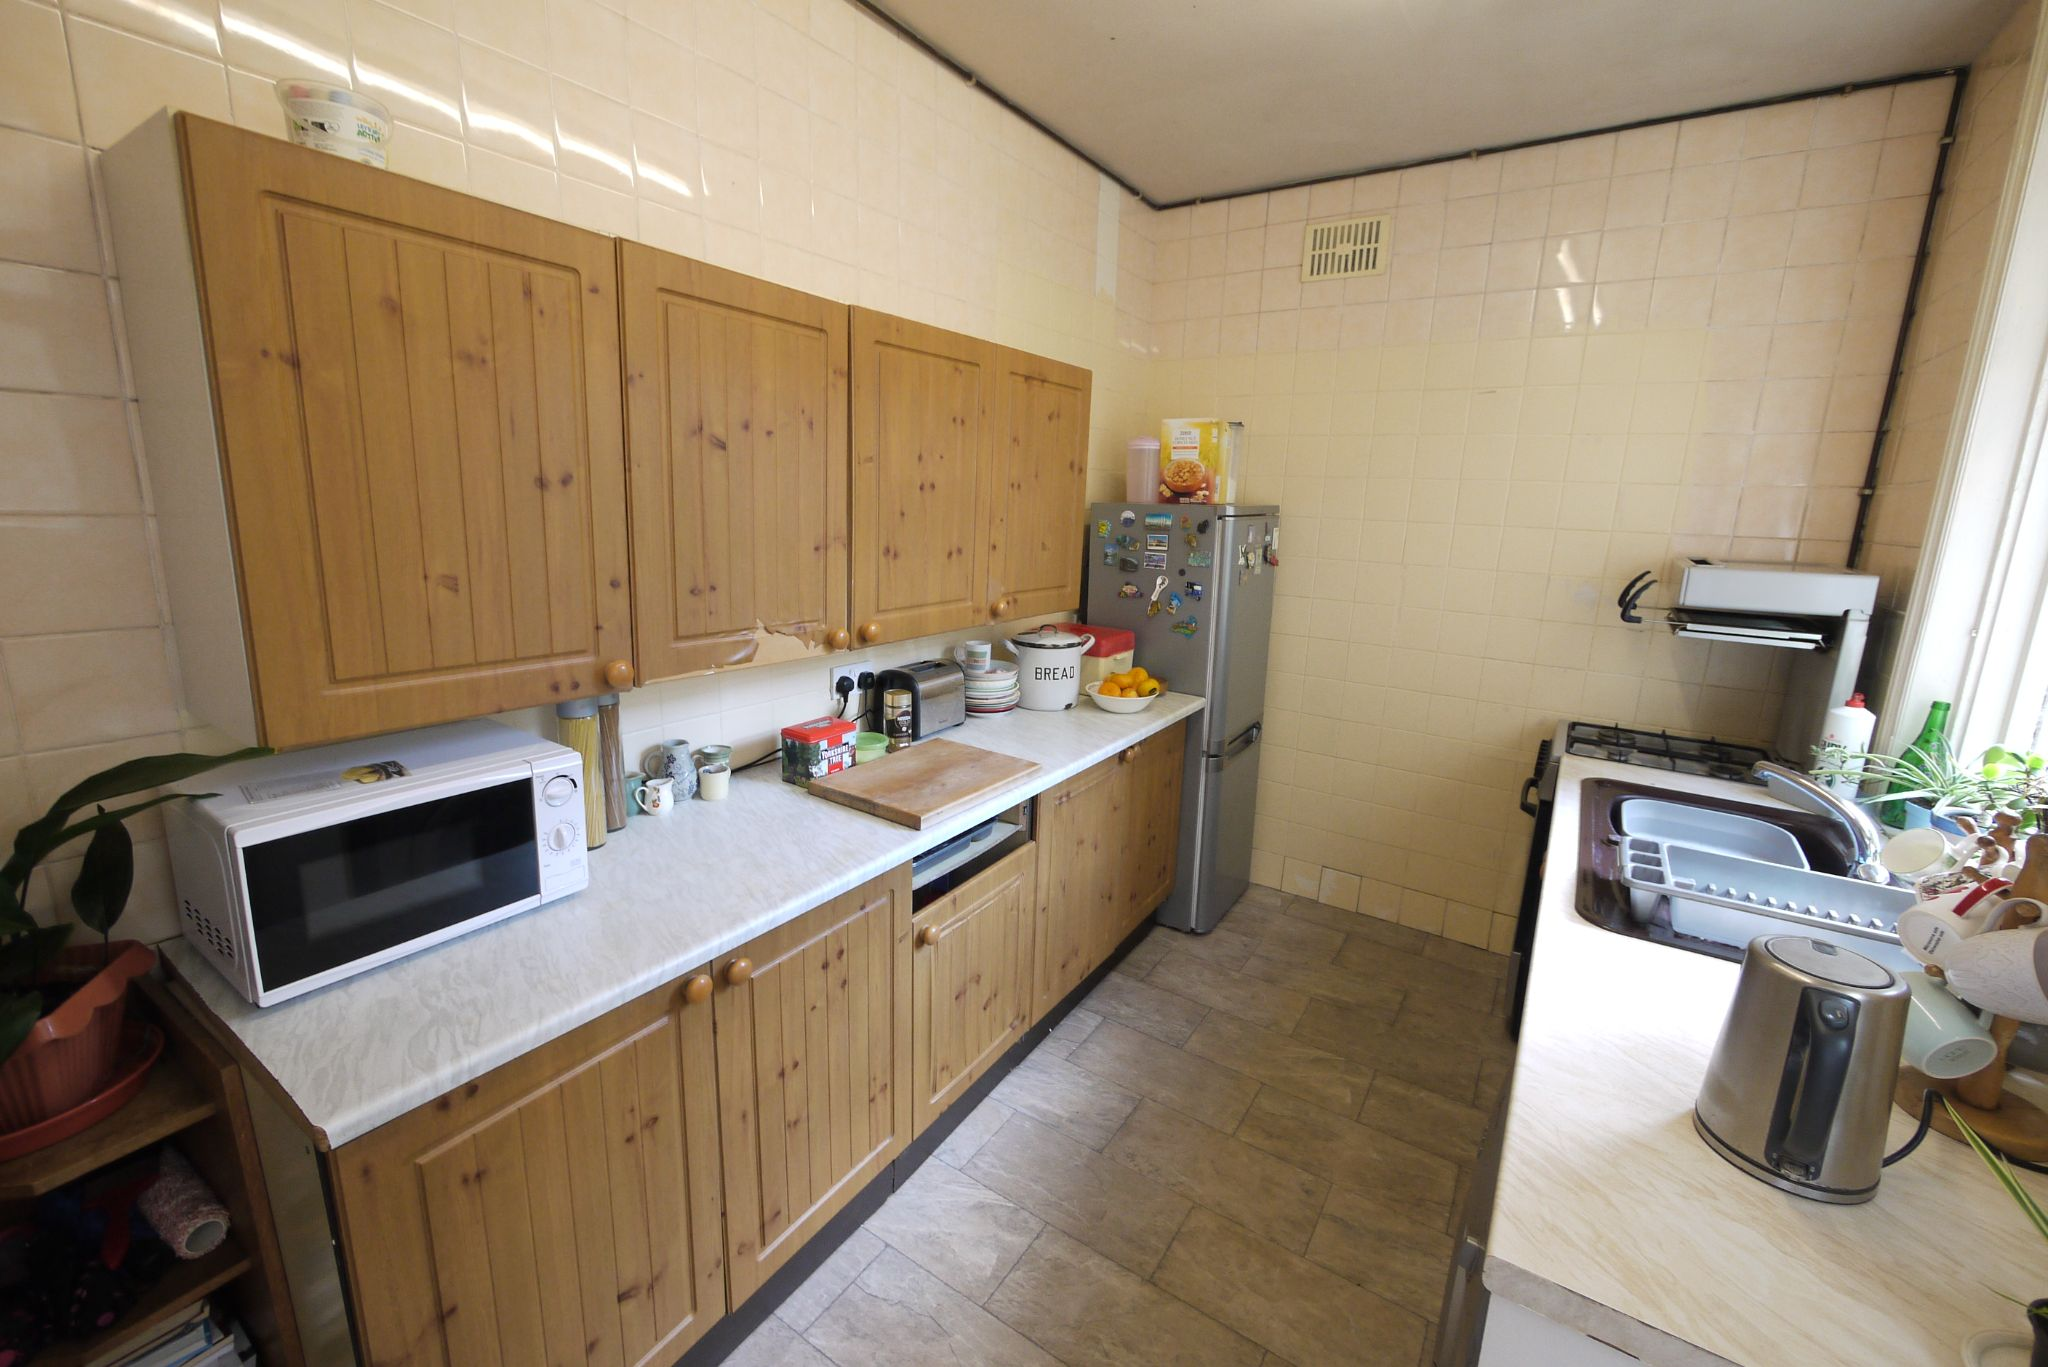 5 bedroom mid terraced house For Sale in Brighouse - Kitchen.